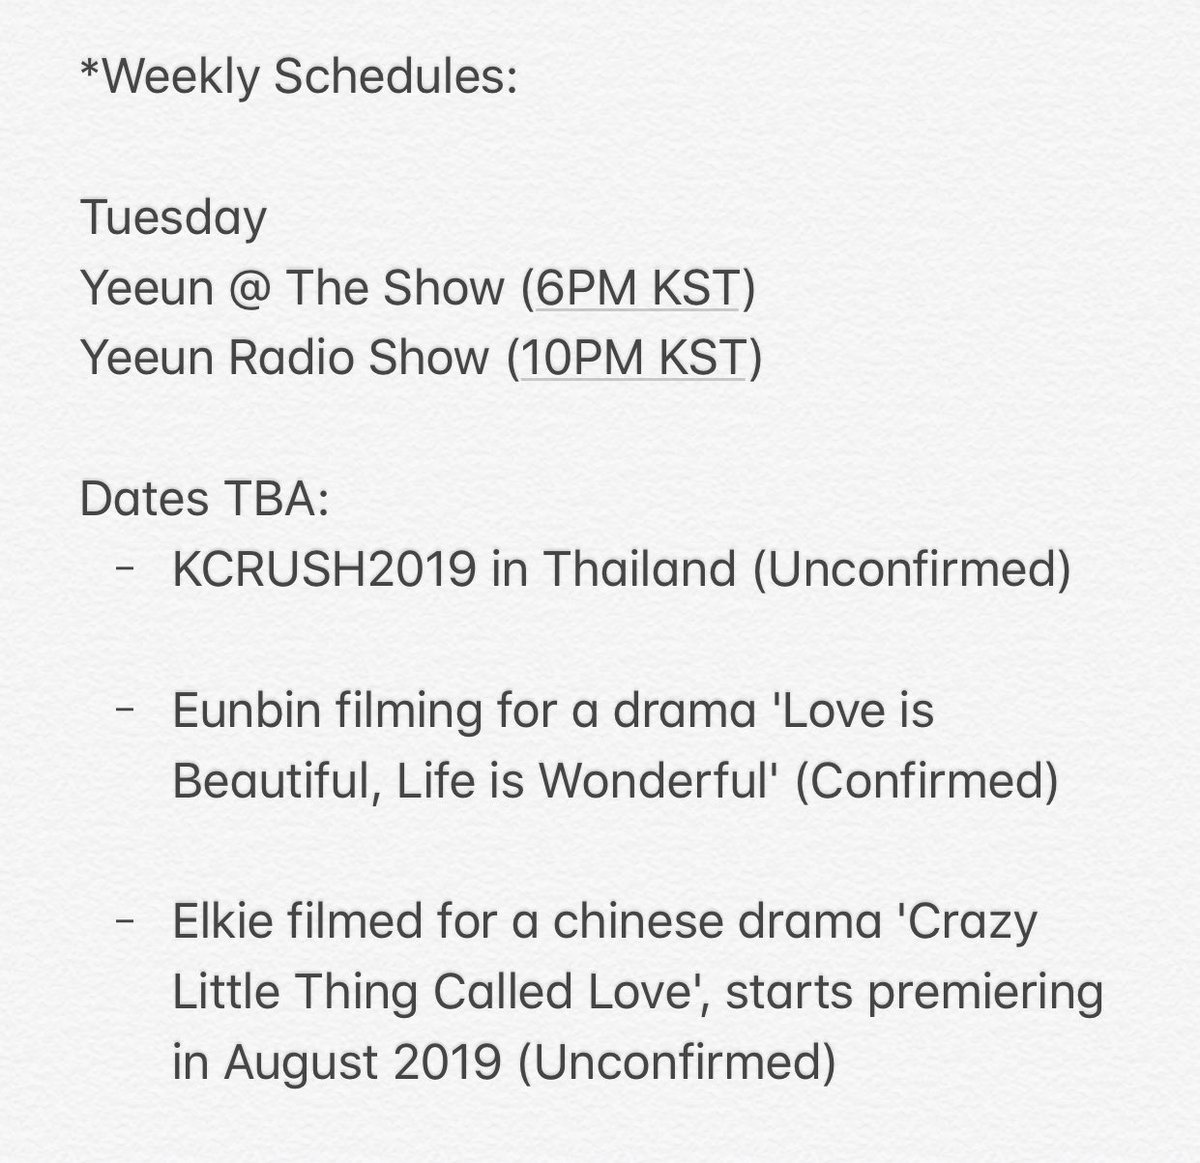 clc_schedule hashtag on Twitter